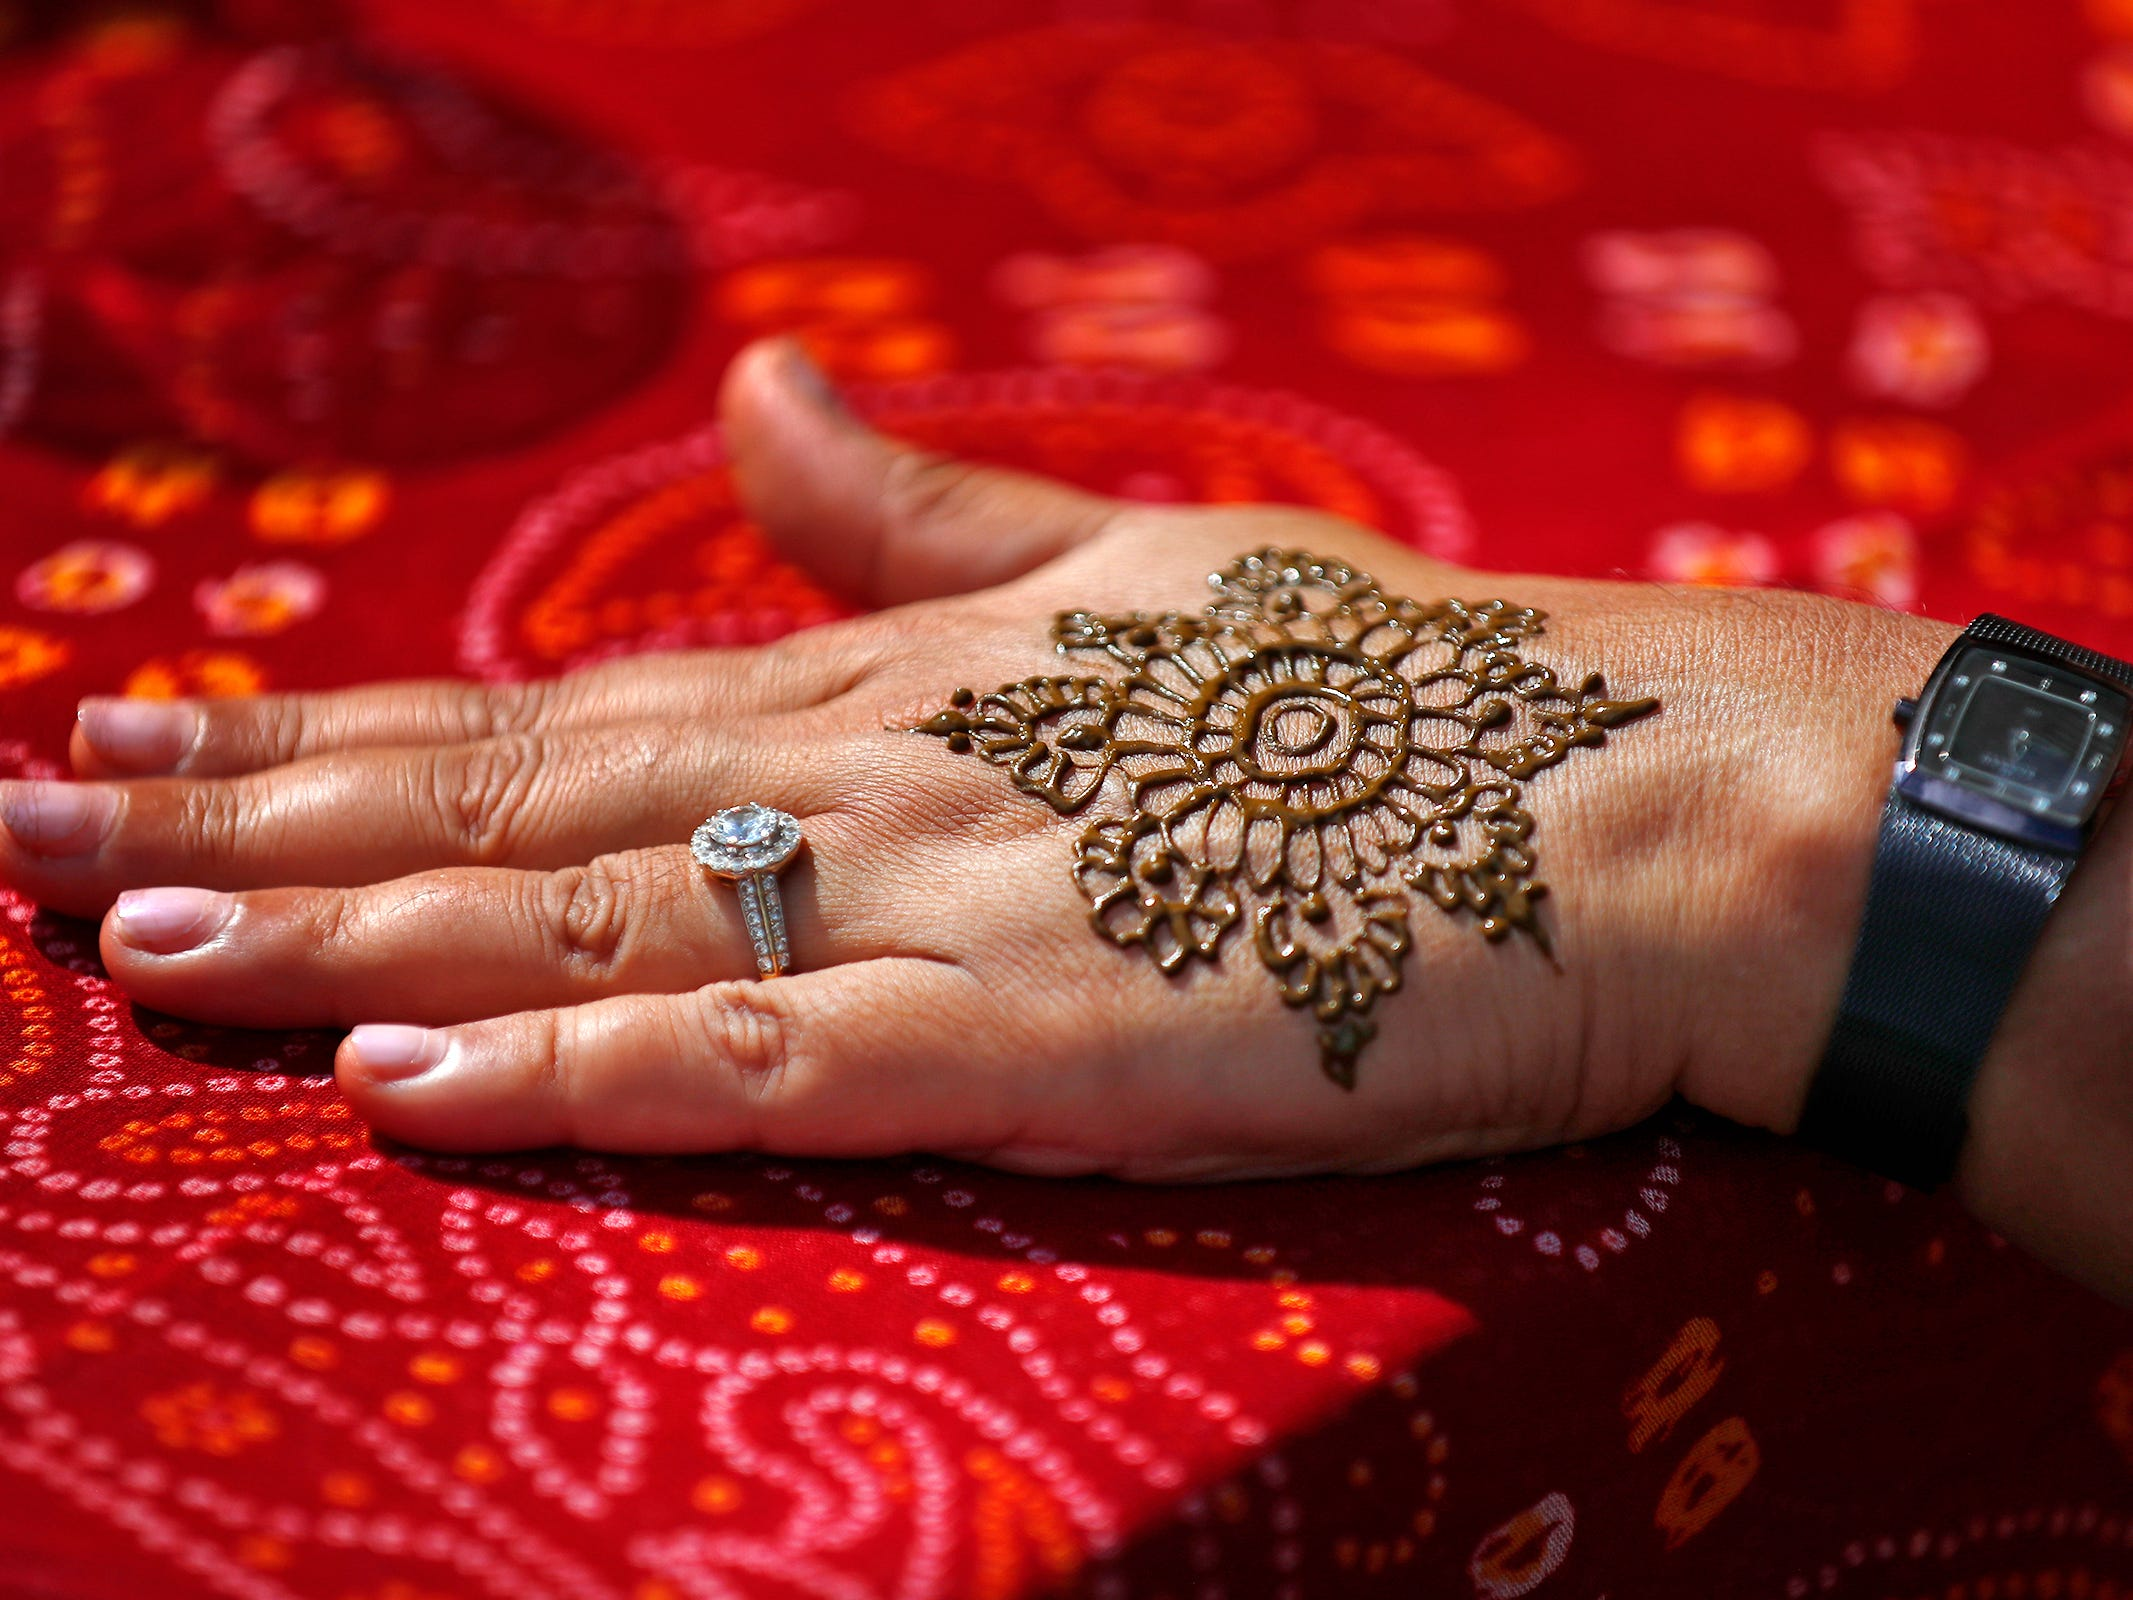 Rupal Thanawala shows her henna tattoo she got from Parul Shah, during the YMCA World Fest, on Monument Circle, Thursday, Sept. 13, 2018. They are both representing the Asian American Alliance at the event.  YMCA of Greater Indianapolis hosts the free event that celebrates cultures including international food vendors, music, sports, and performers.